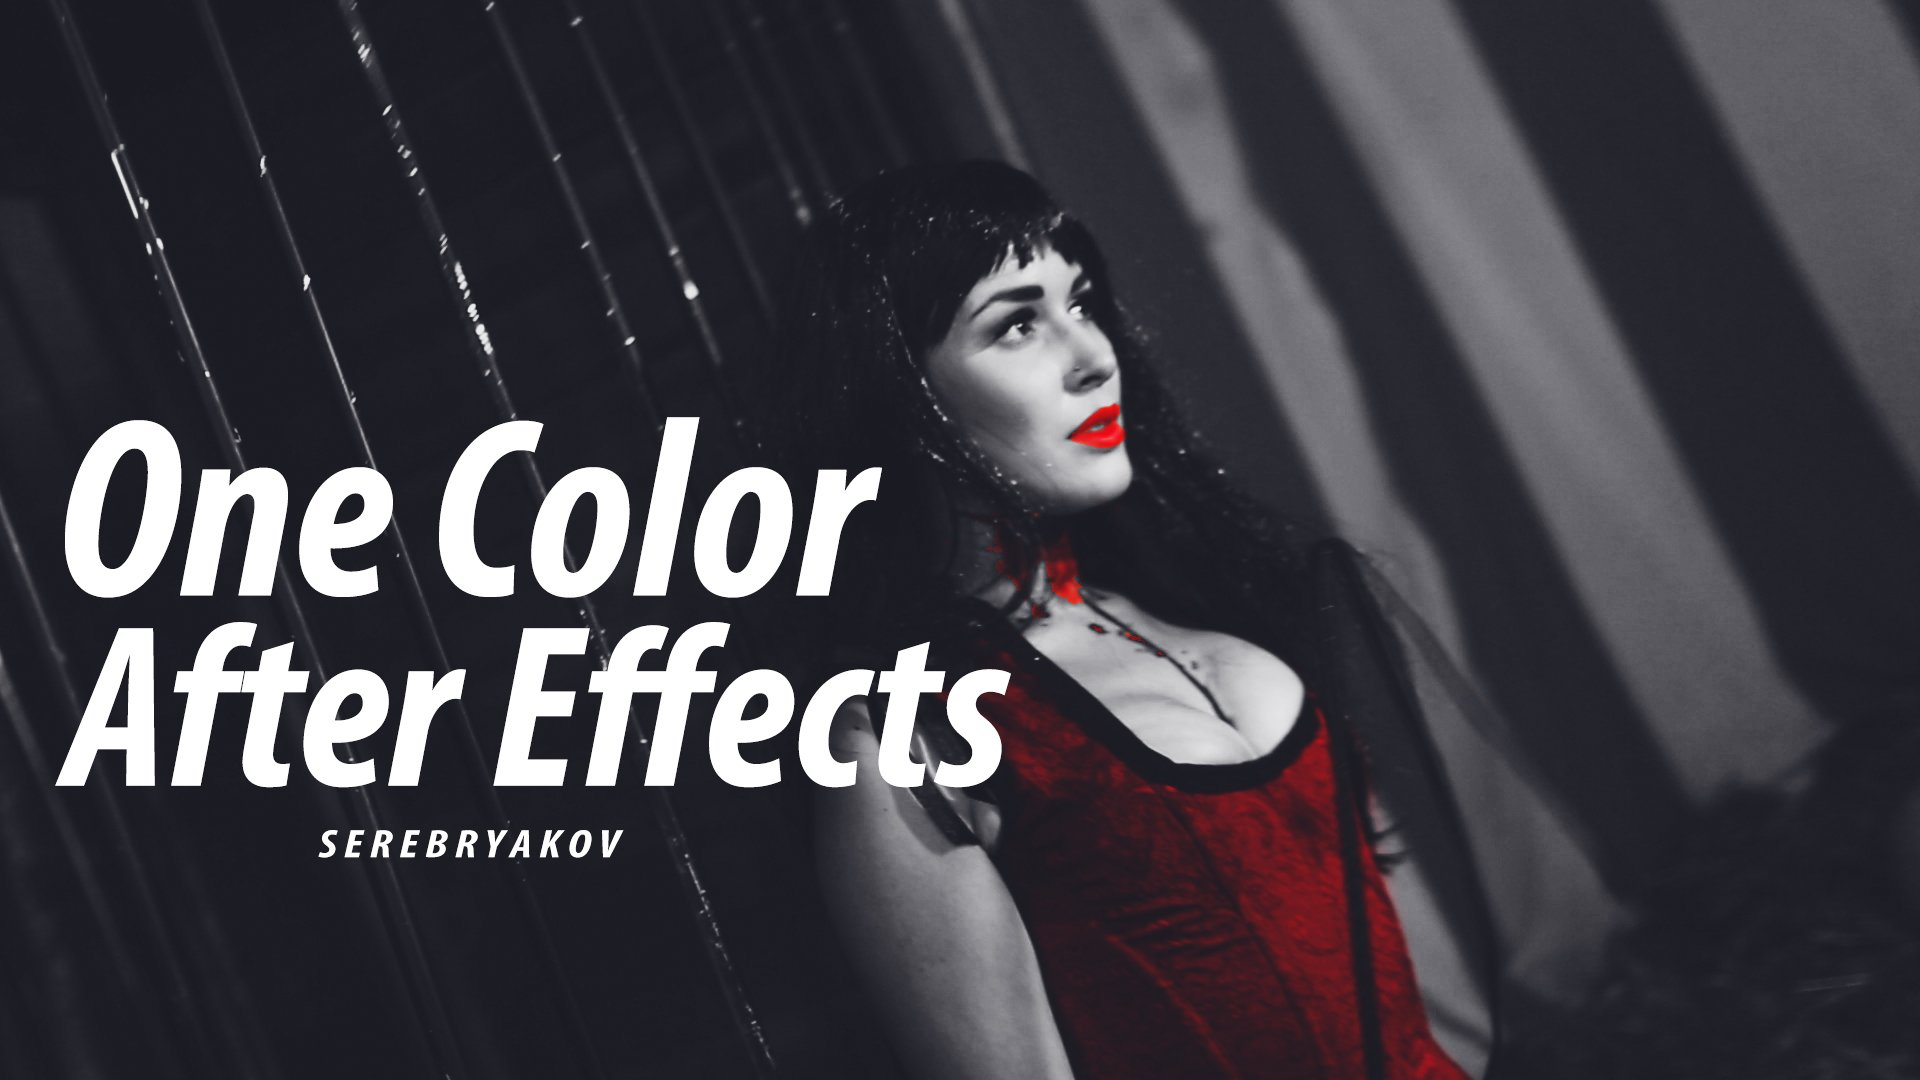 #1 One Color - After Effects (SEREBRYΛKOV)